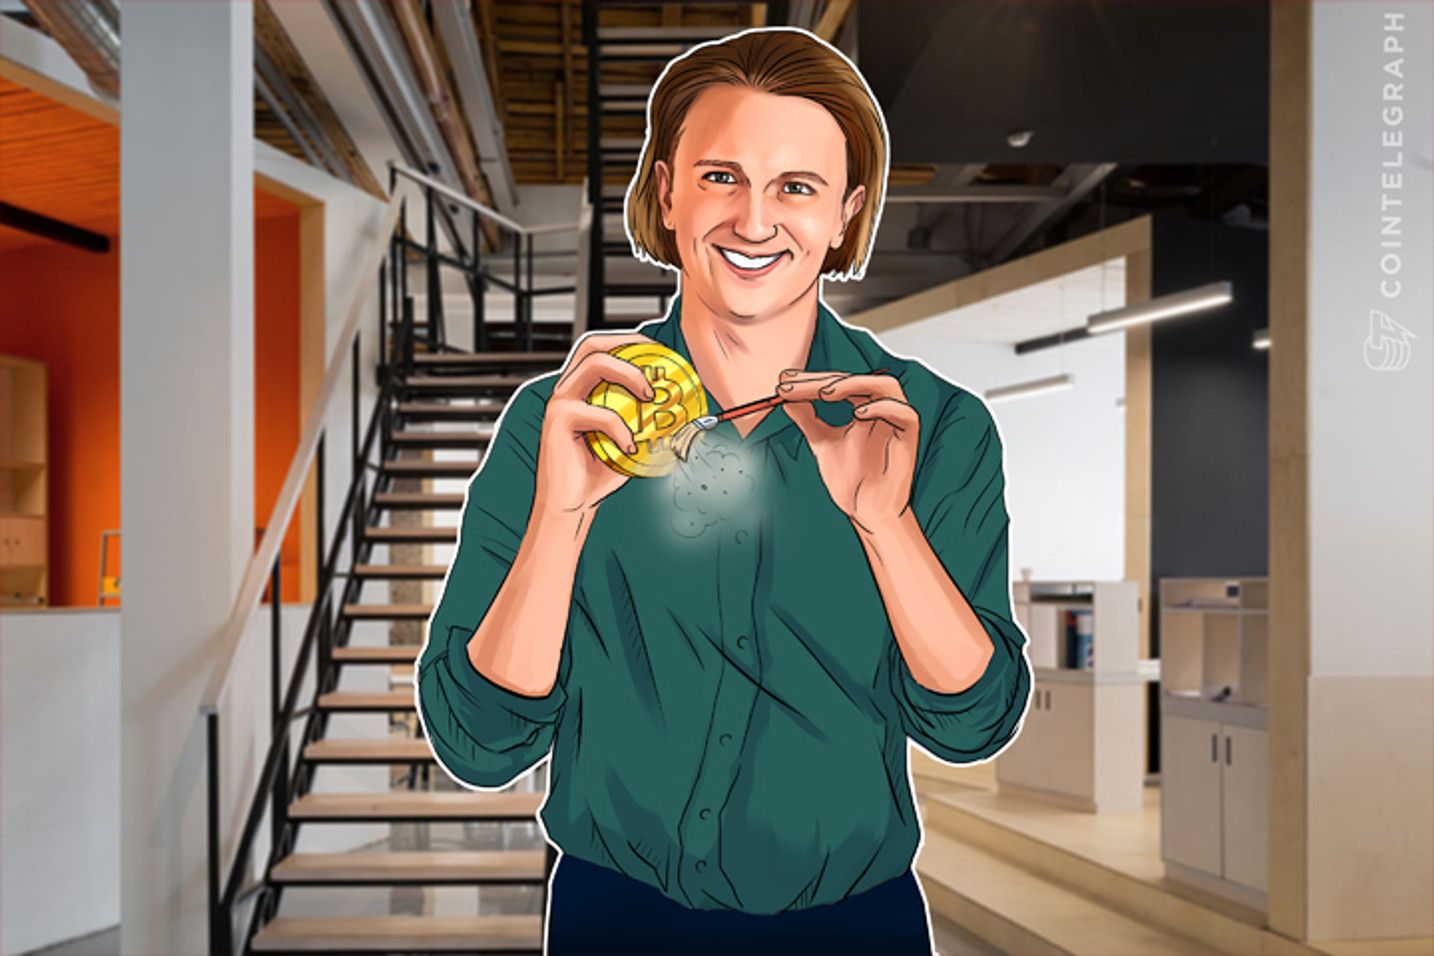 Modern Mobile-Only Bank Revolut Says Bitcoin Not a Fraud